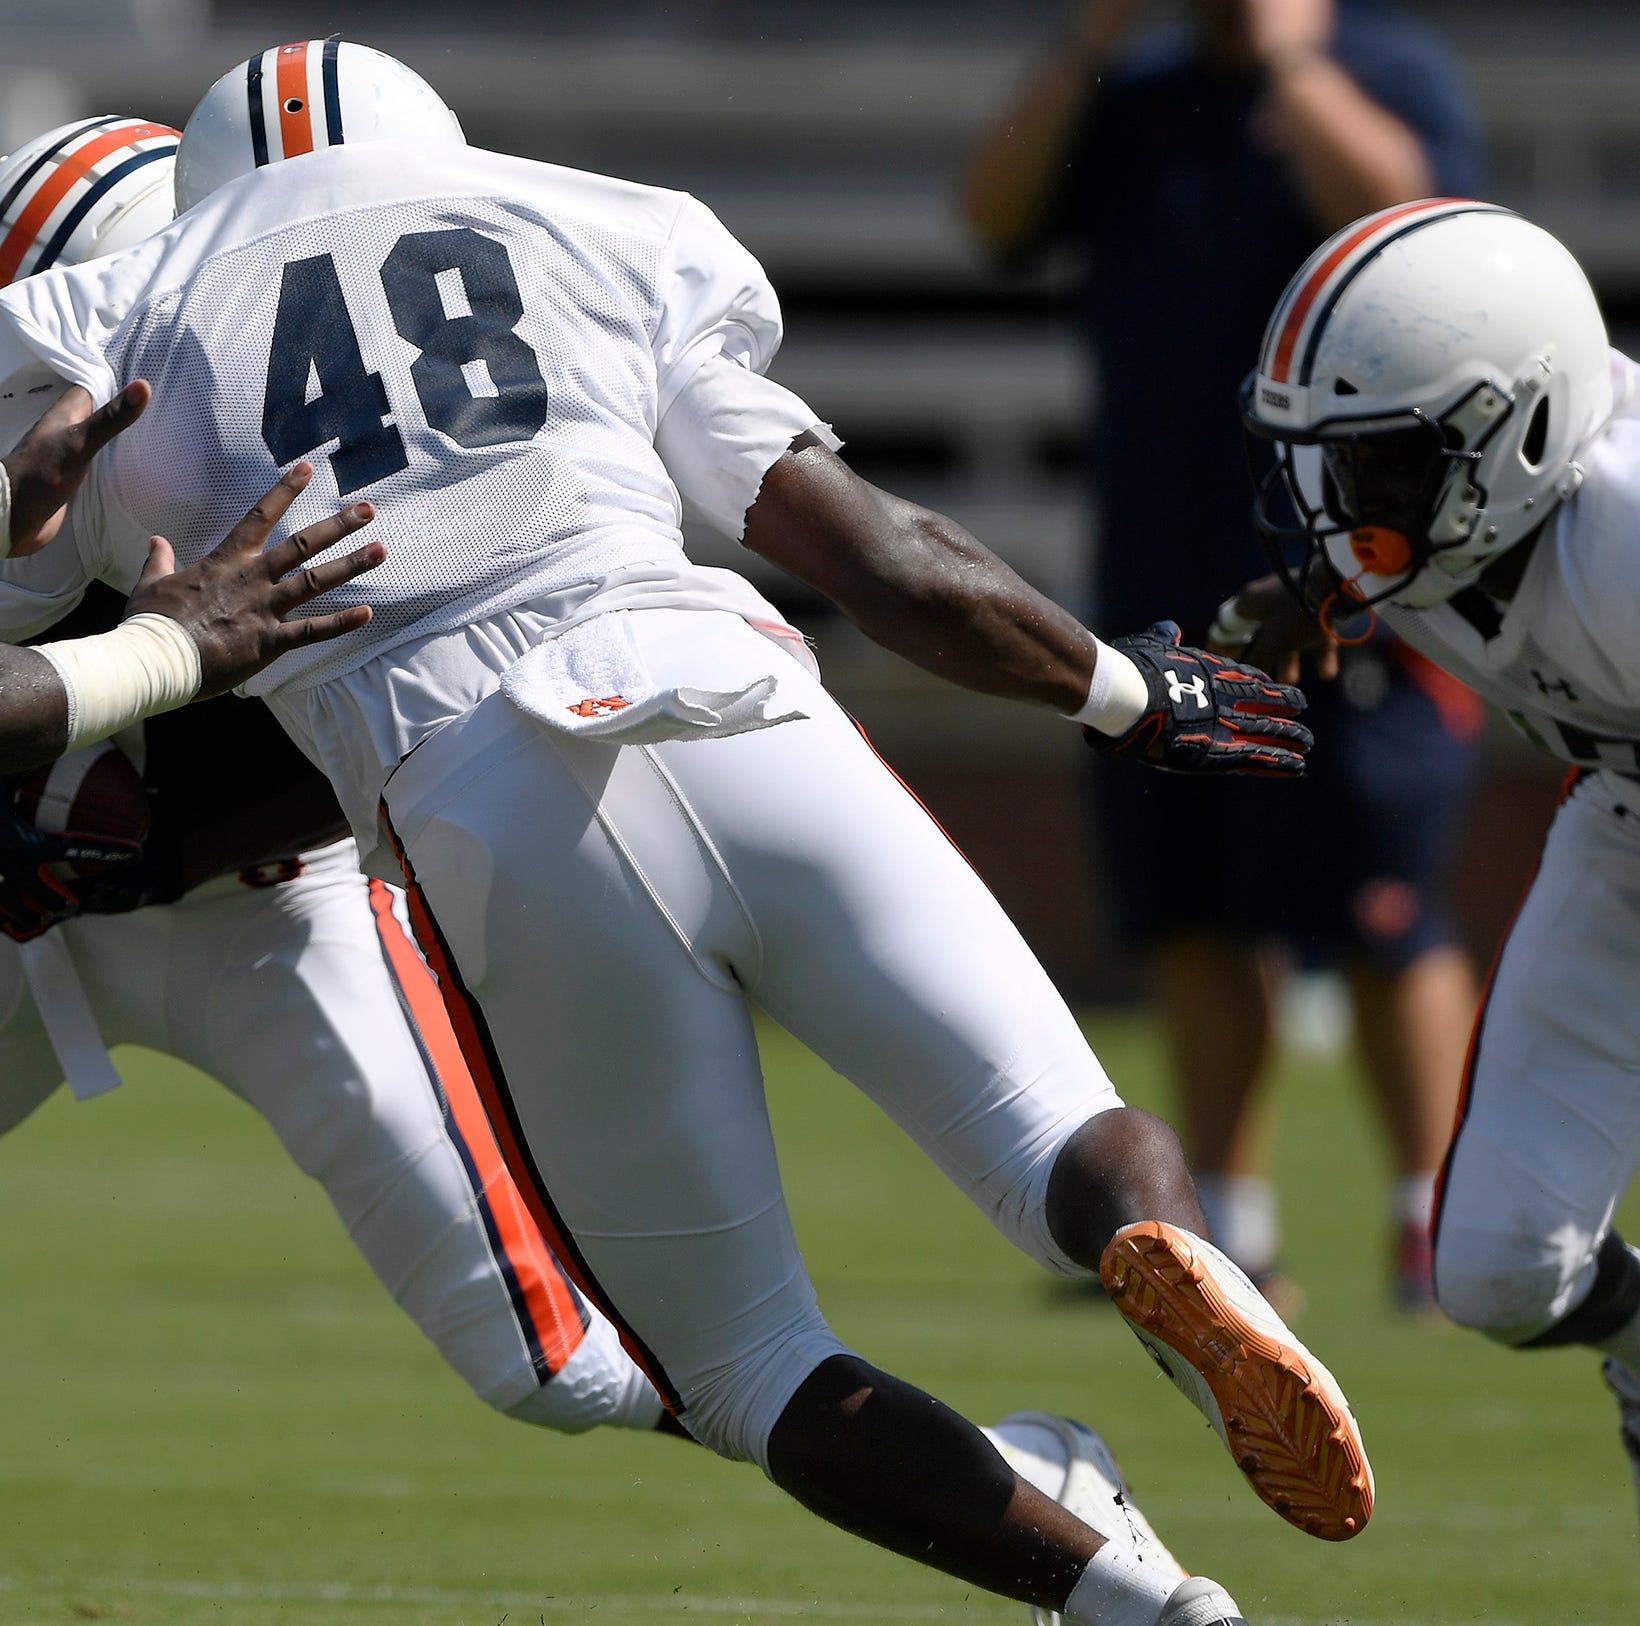 Auburn linebackers coach Travis Williams enjoying luxury few have had while keeping eye toward future